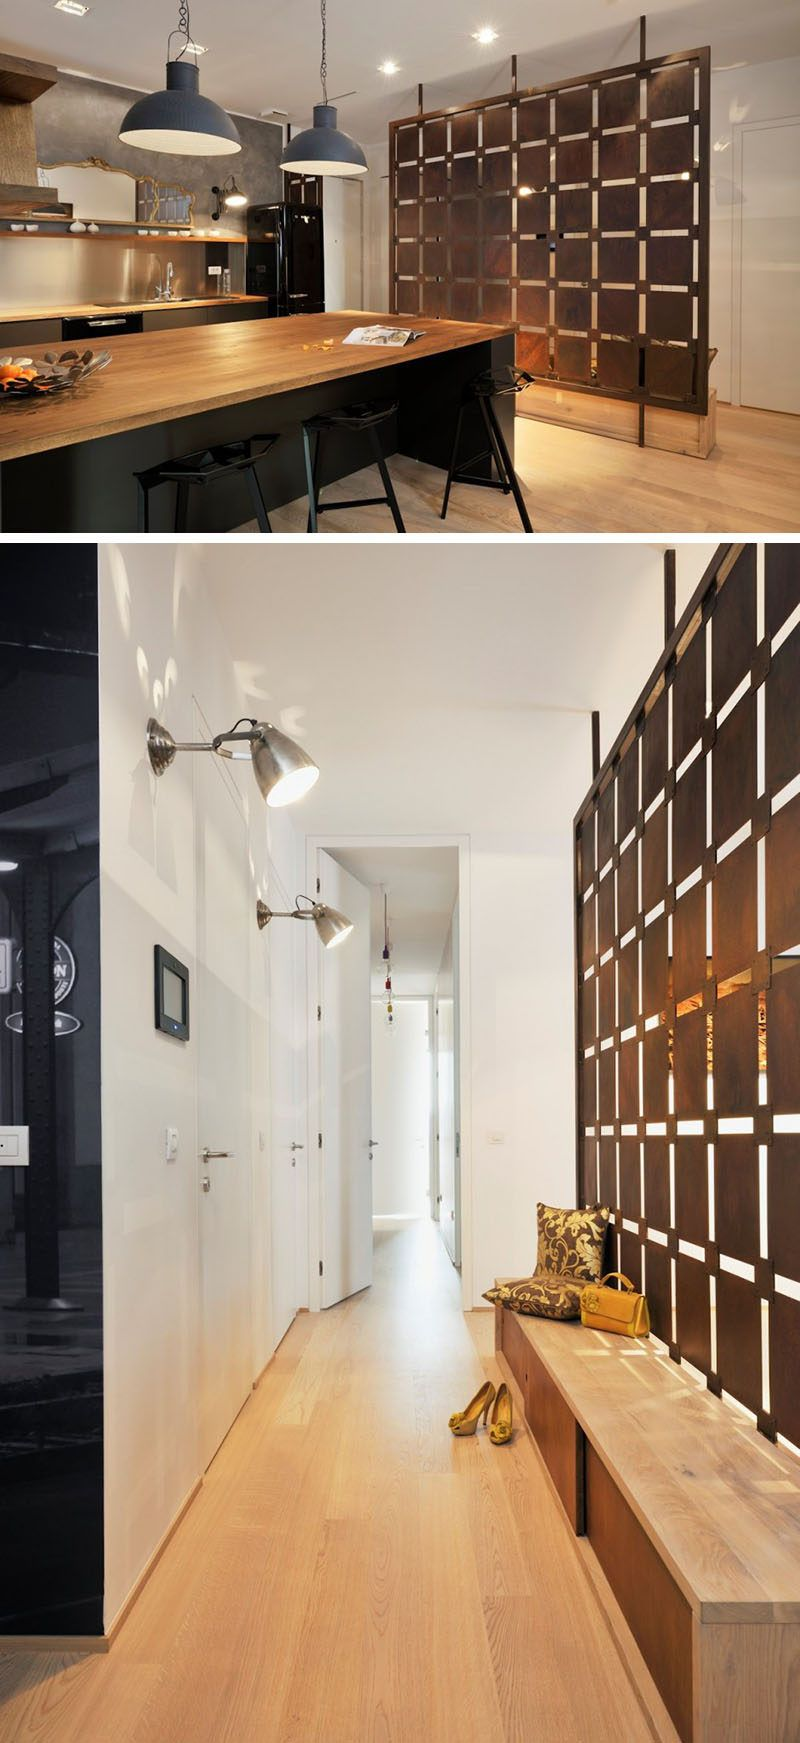 Marvelous 15 Creative Ideas For Room Dividers // Artistic Geometric Wall Panels  Divide The Entry Way Part 26